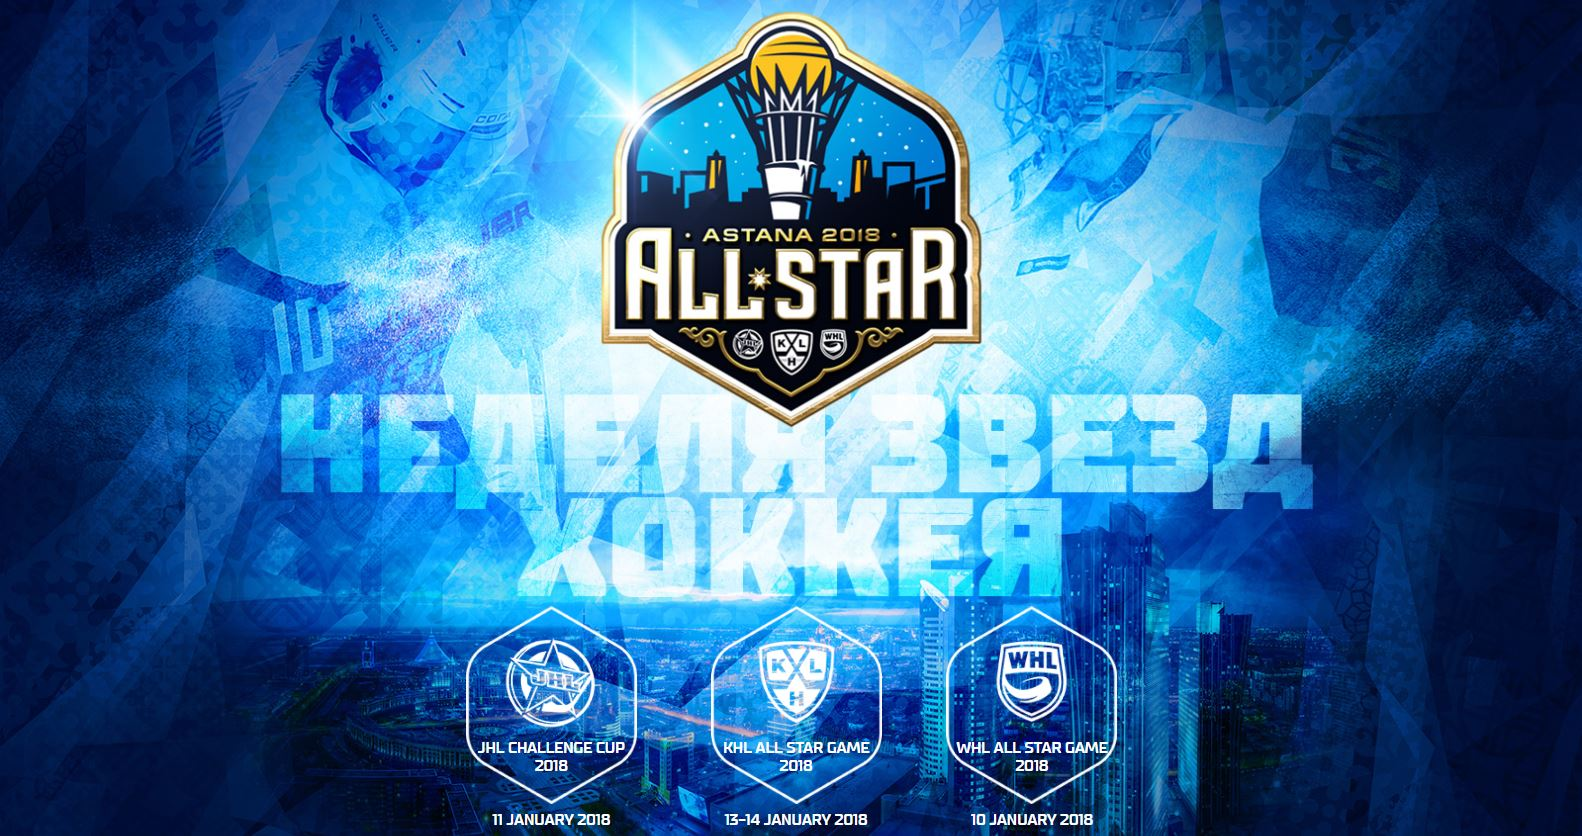 ALL_STAR_WEEK_web-site (2)EN.jpg